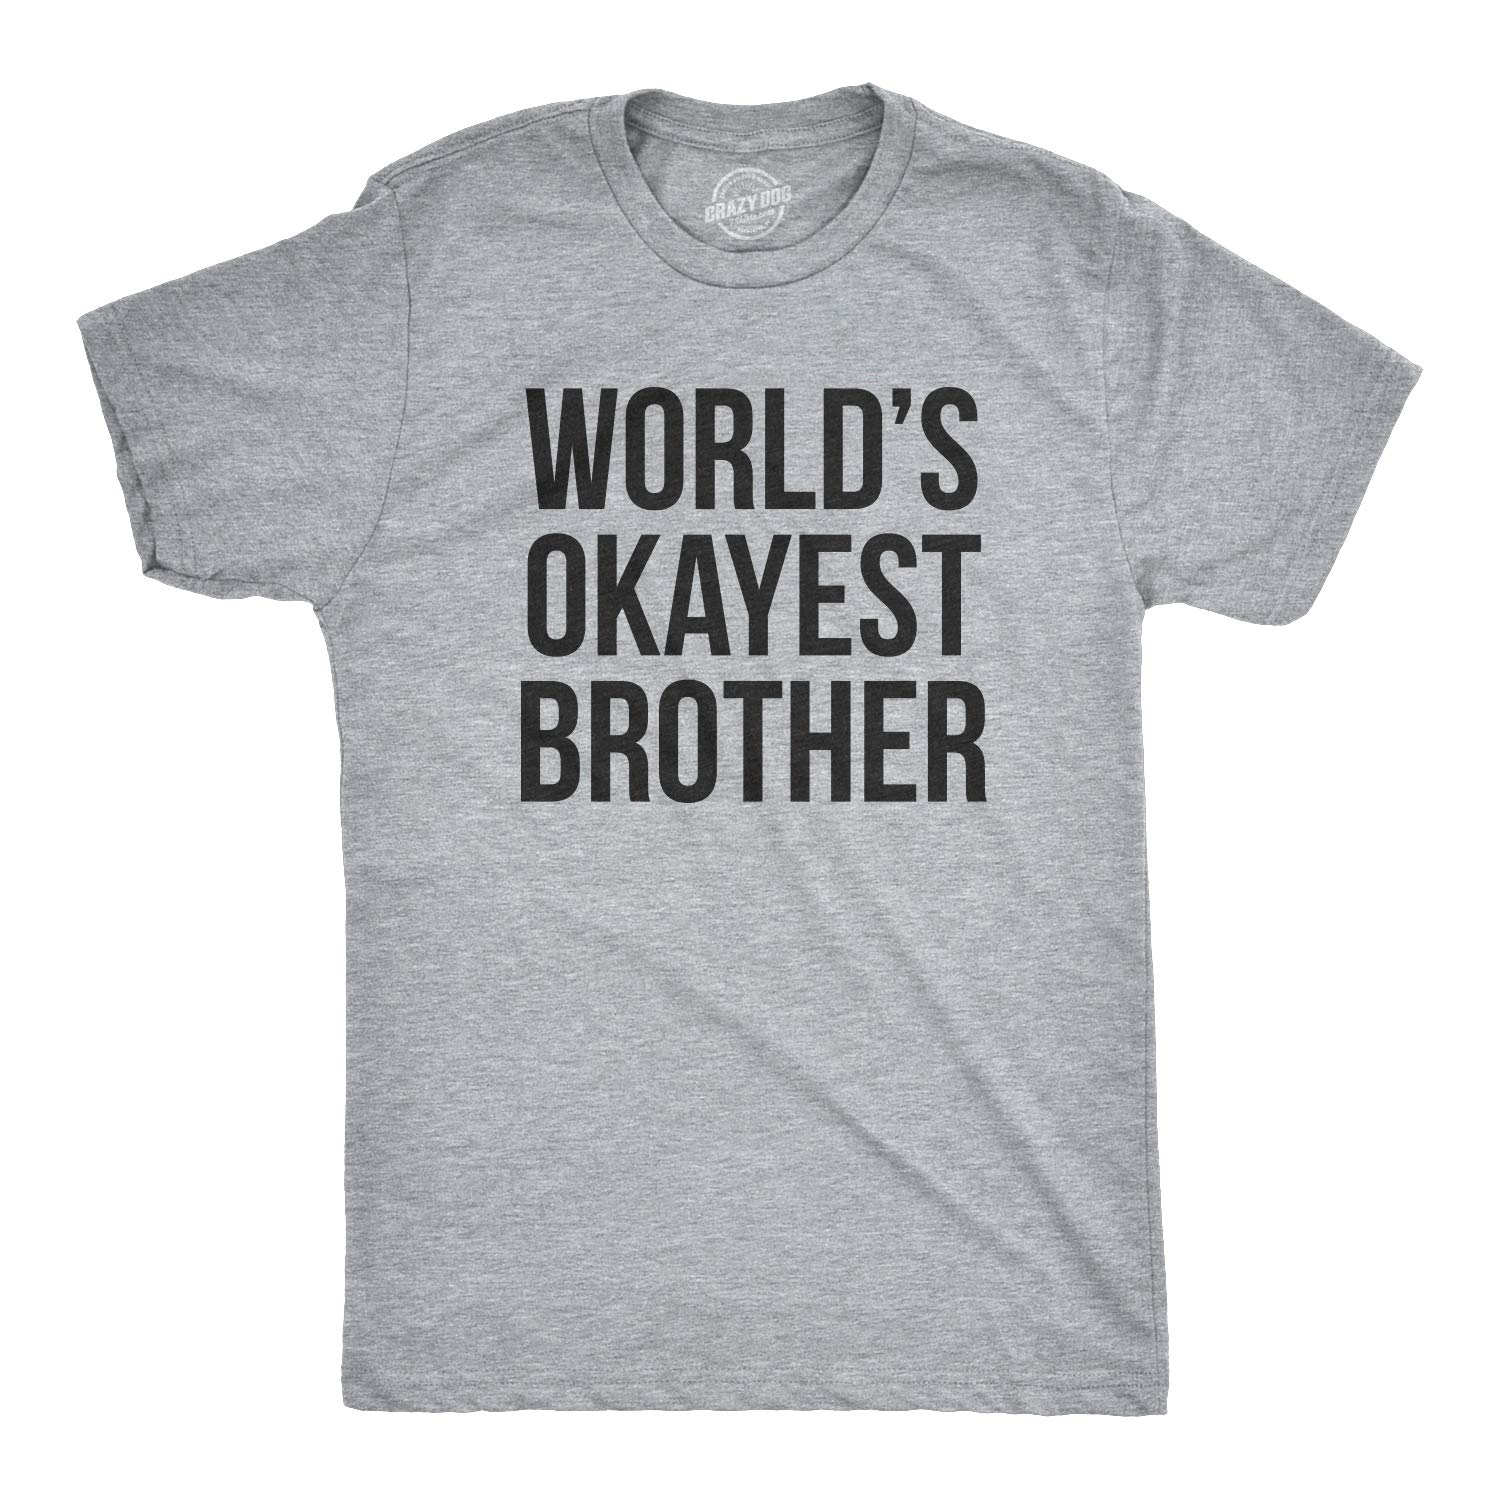 Mens World's Okayest Brother T Shirt Funny Sarcastic Siblings Tee For Bro Crazy Dog Tshirts